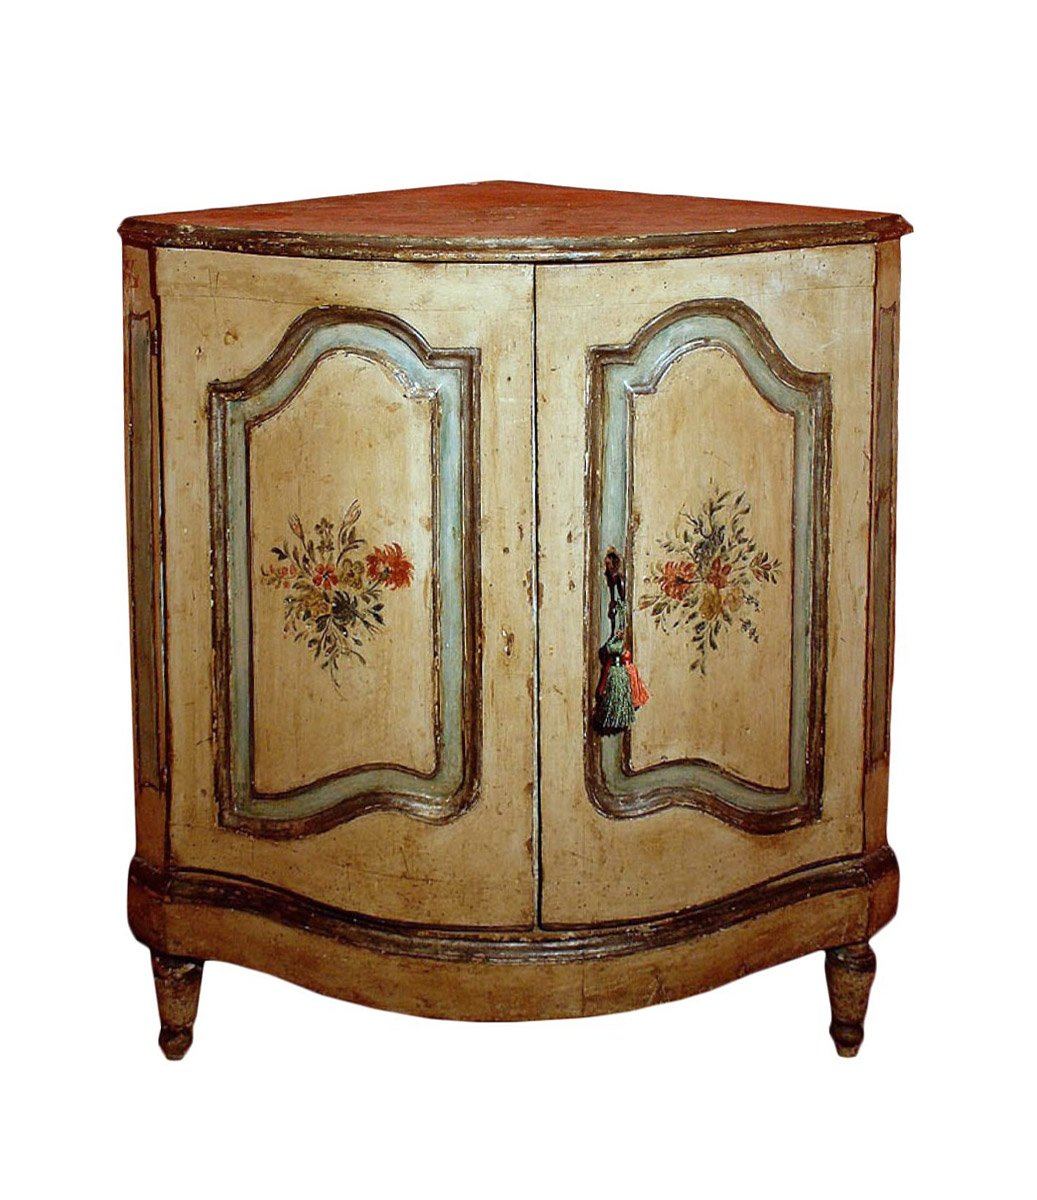 18th Century Painted Corner Cabinet From Italy